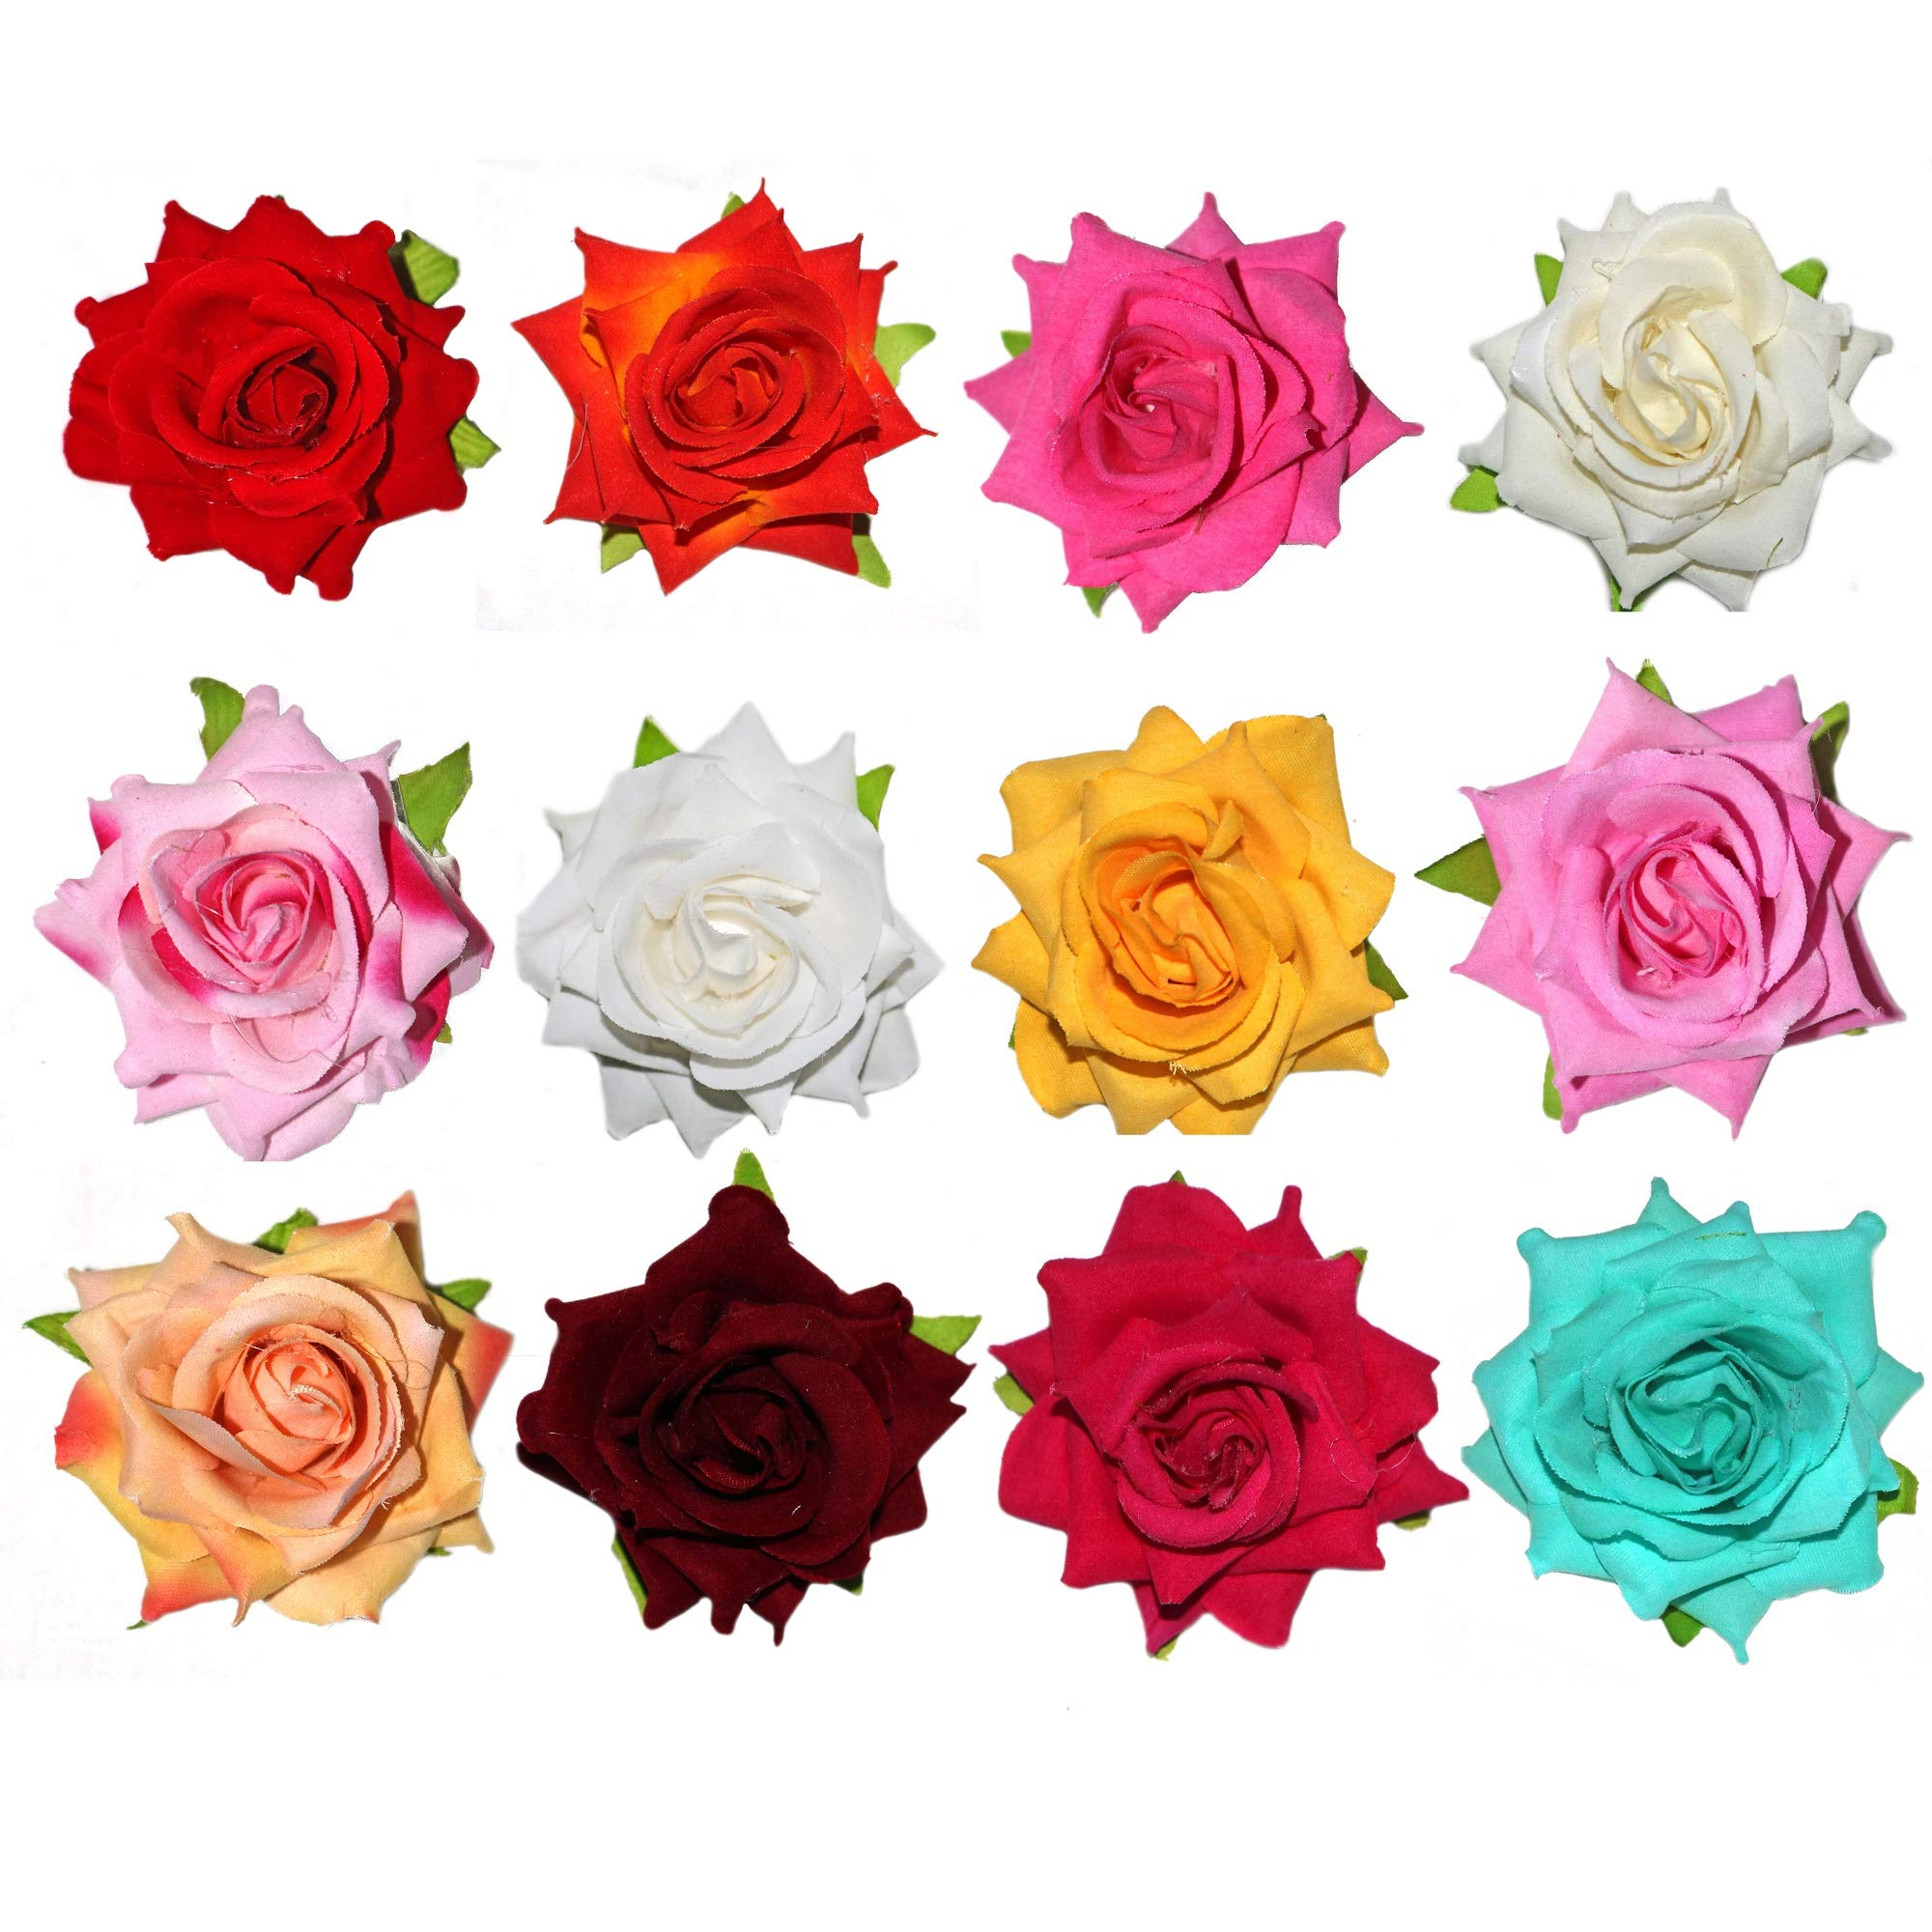 Paradise® Flower Hair Accessories For Women, Girls And Kids Girls Multi-Color Flower Hair Clips (Multi 12pc) (B07PFJ2JLS) Amazon Price History, Amazon Price Tracker